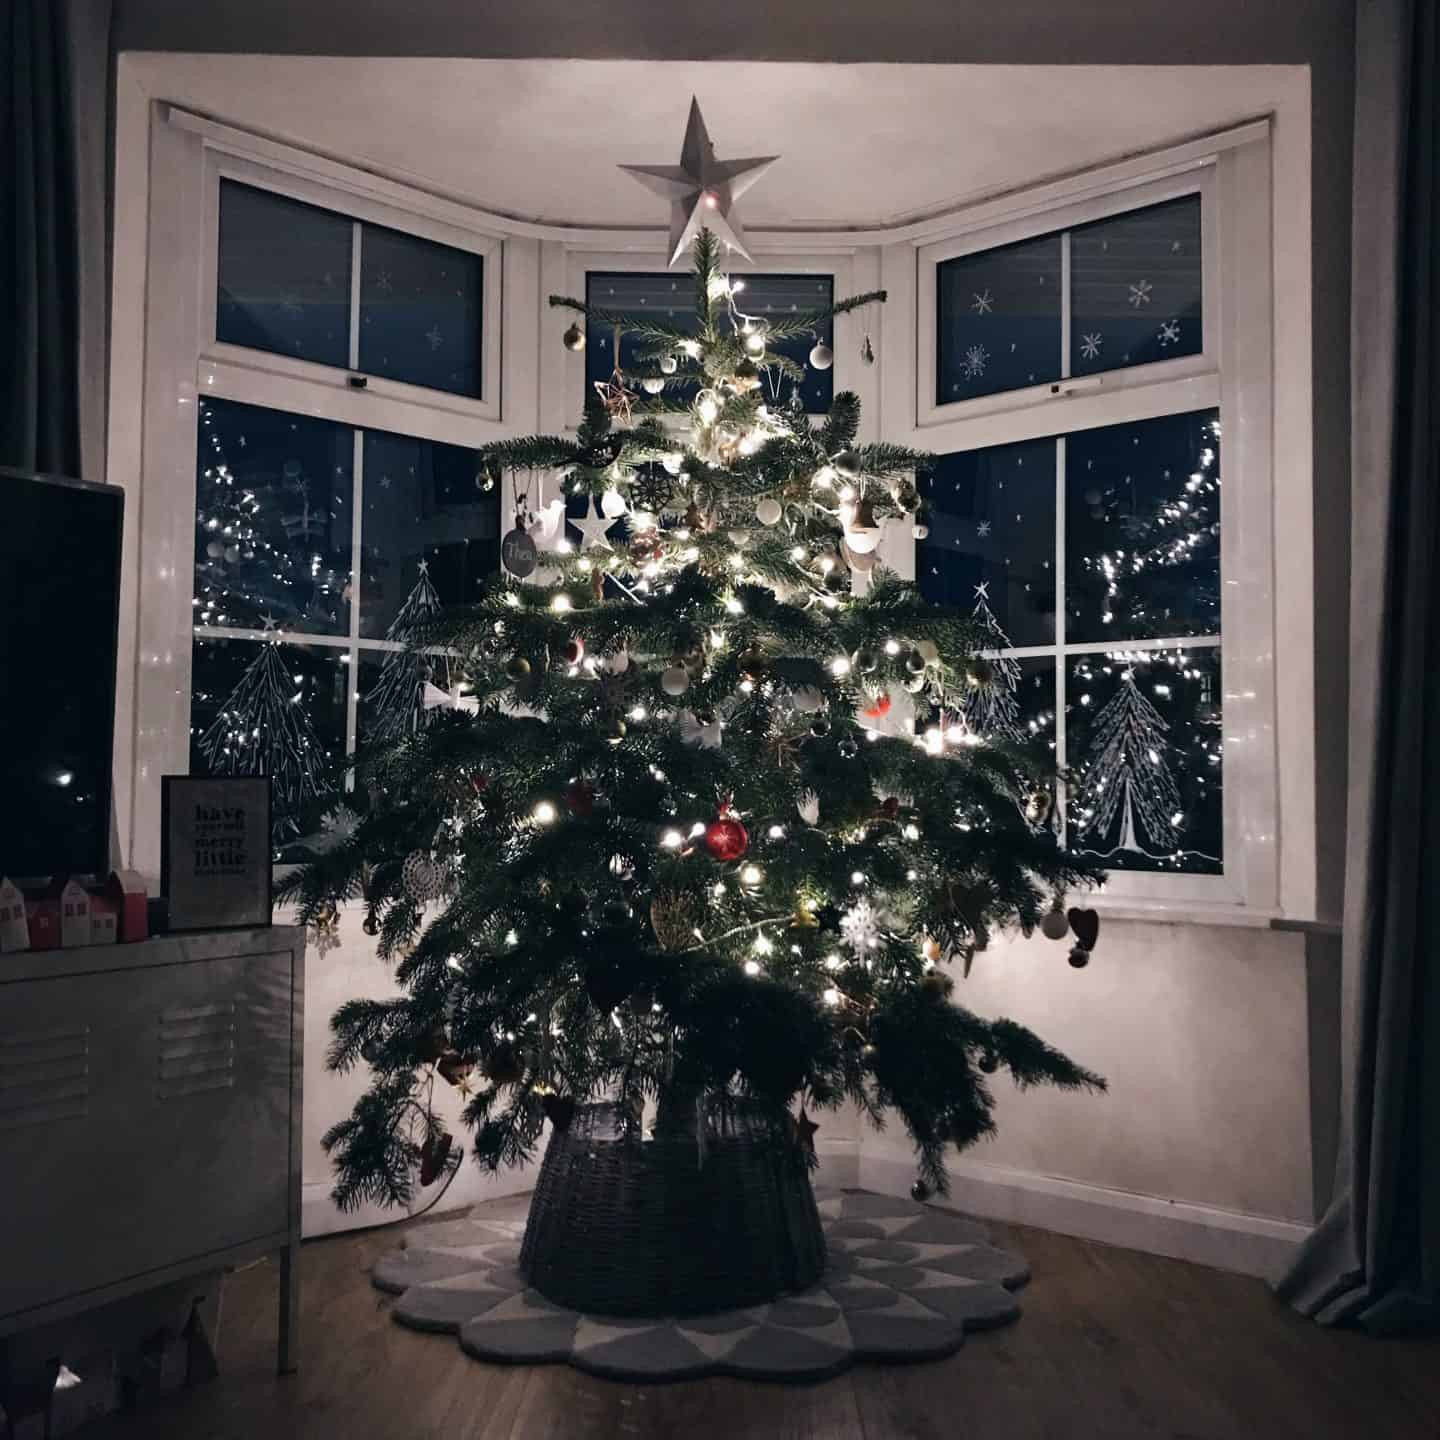 Lit up Christmas Tree in front of a bay window